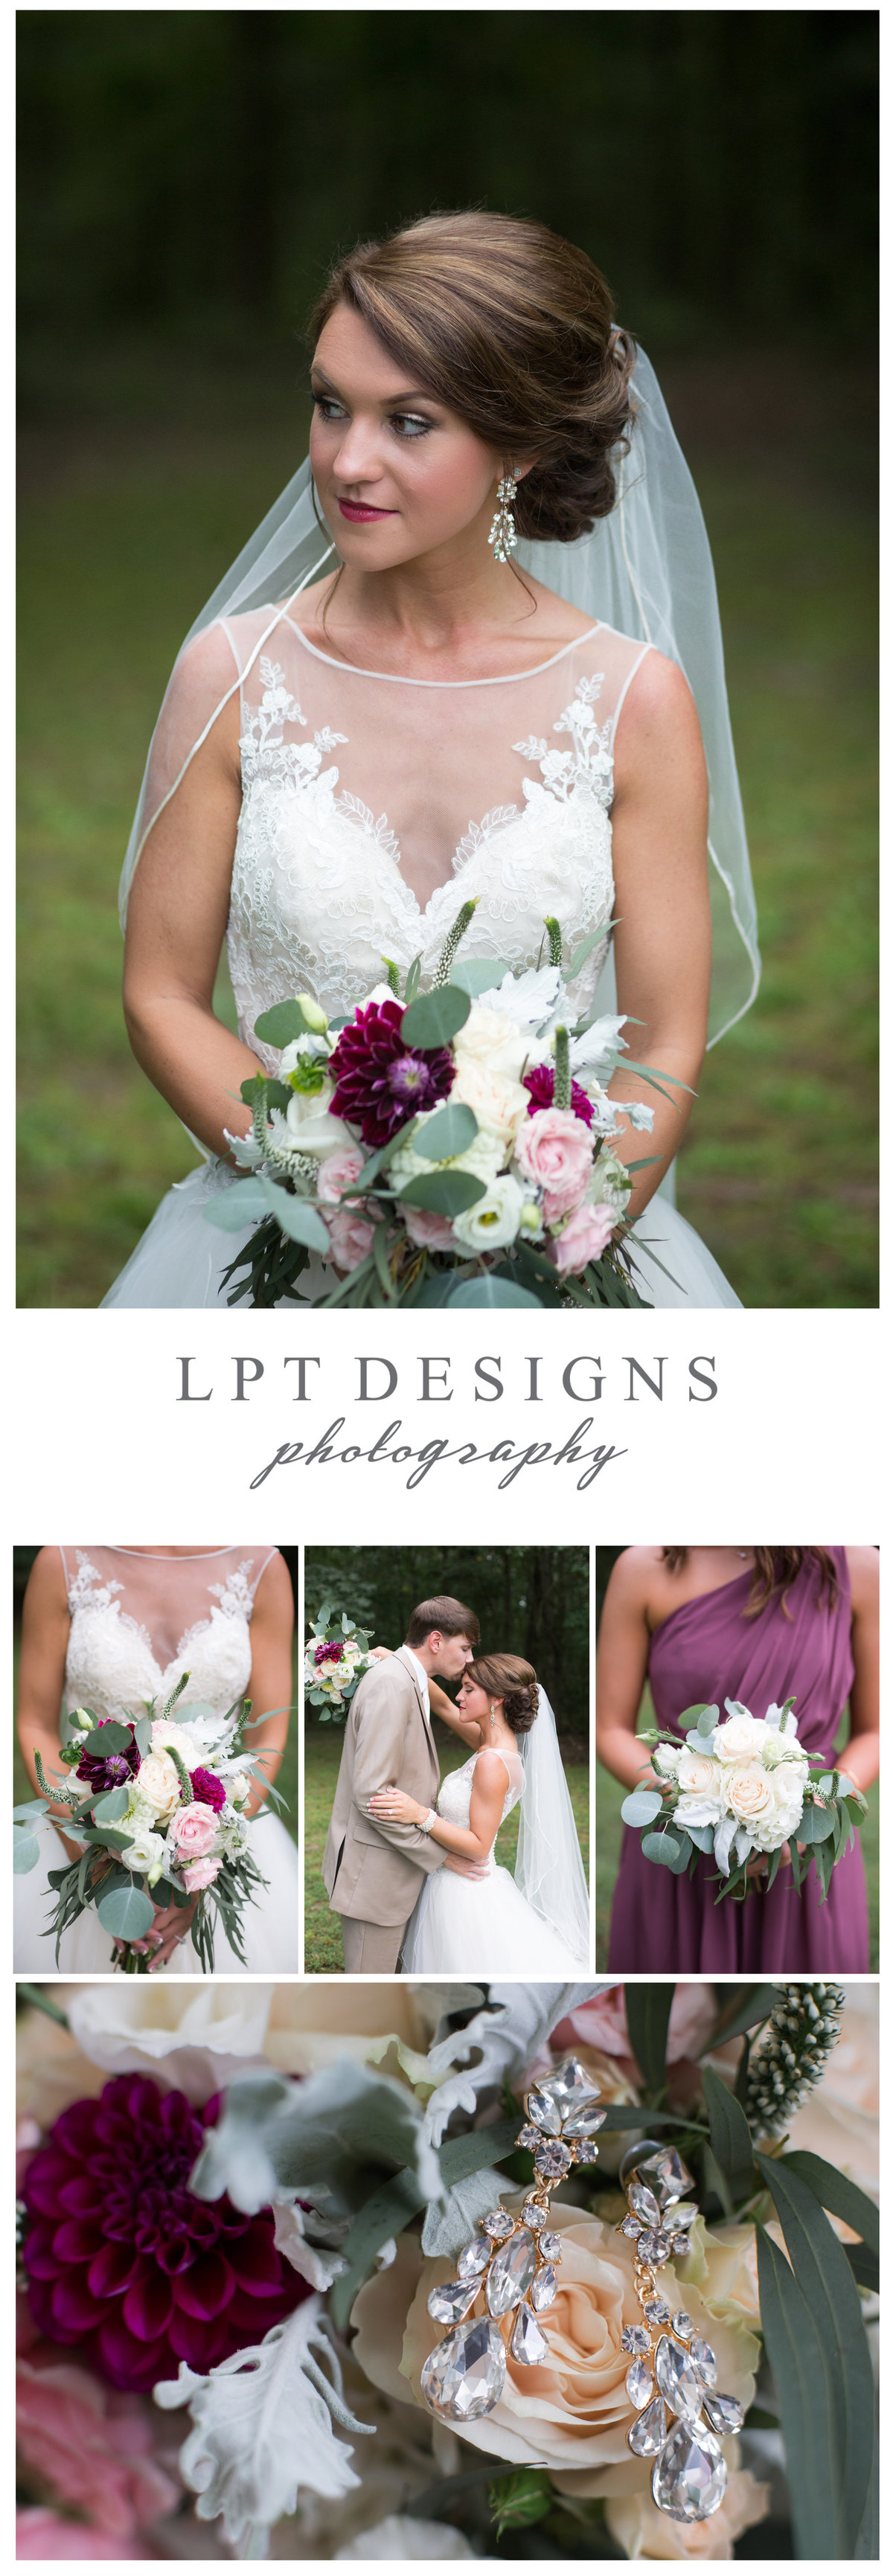 LPT Designs Photography Lydia Thrift Gadsden Alabama Fine Art Wedding Photographer LL2